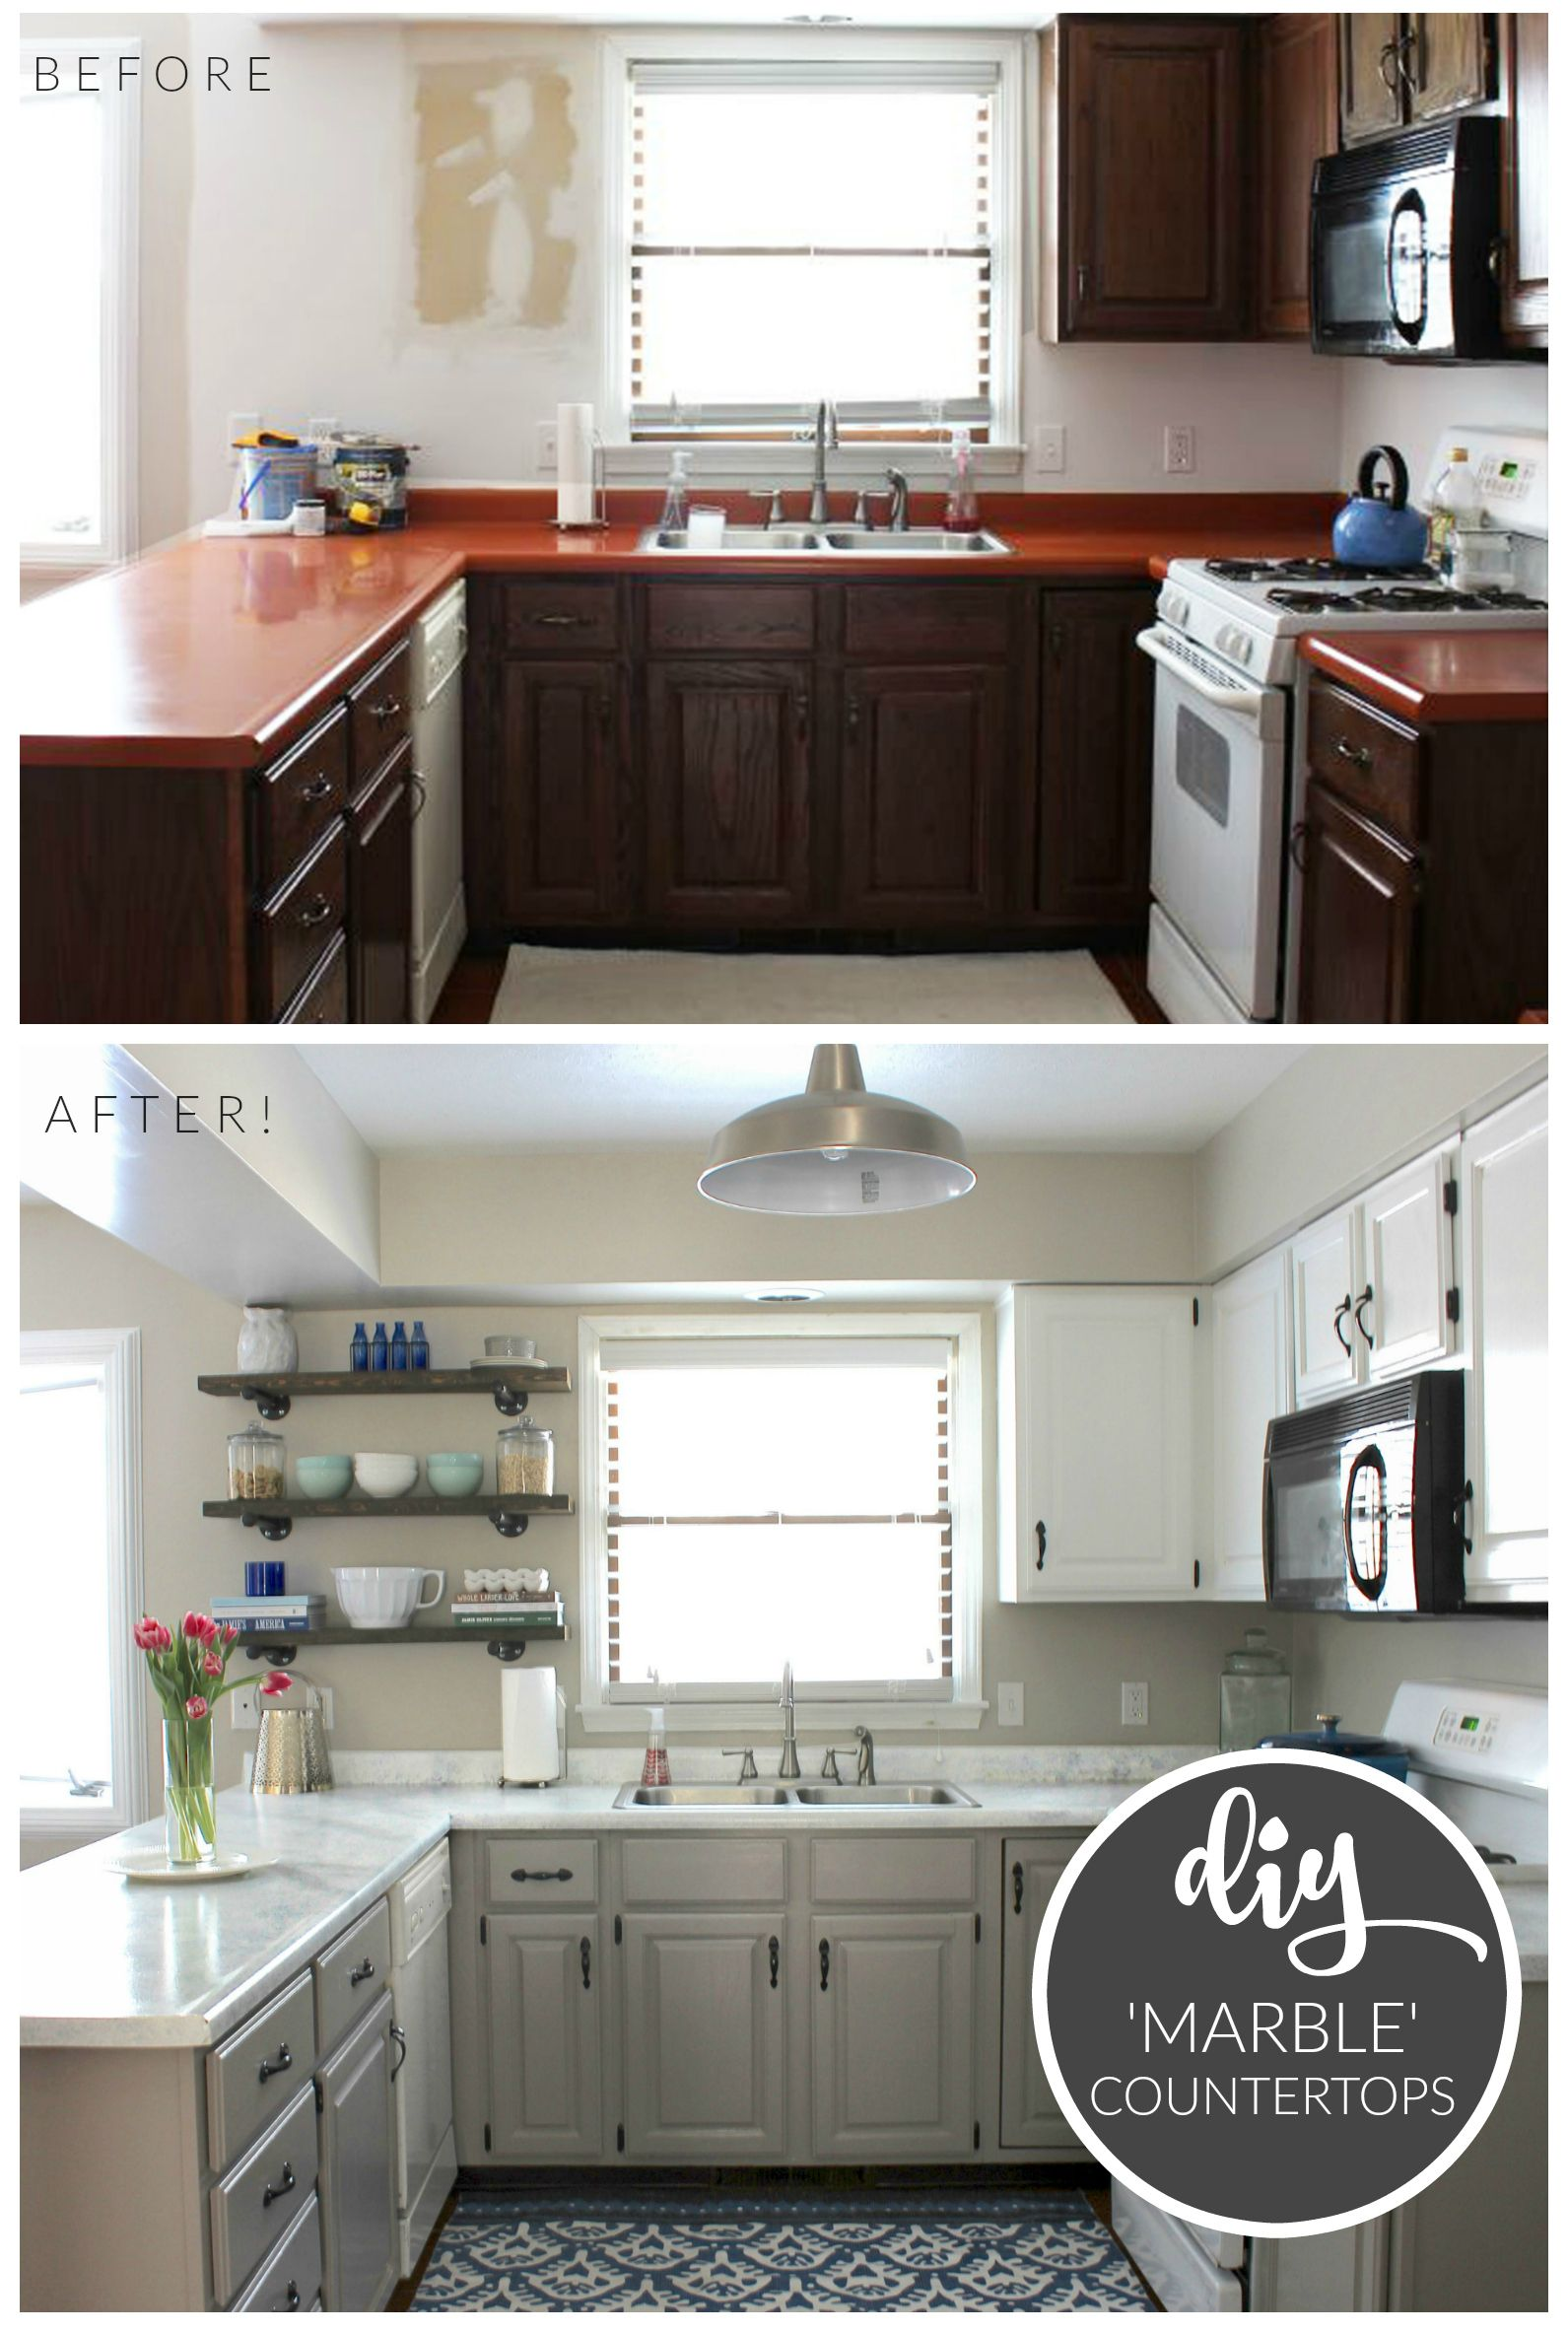 inexpensive kitchen countertops Budget Kitchen Makeover DIY Faux Marble Countertops Painted with the White Diamond